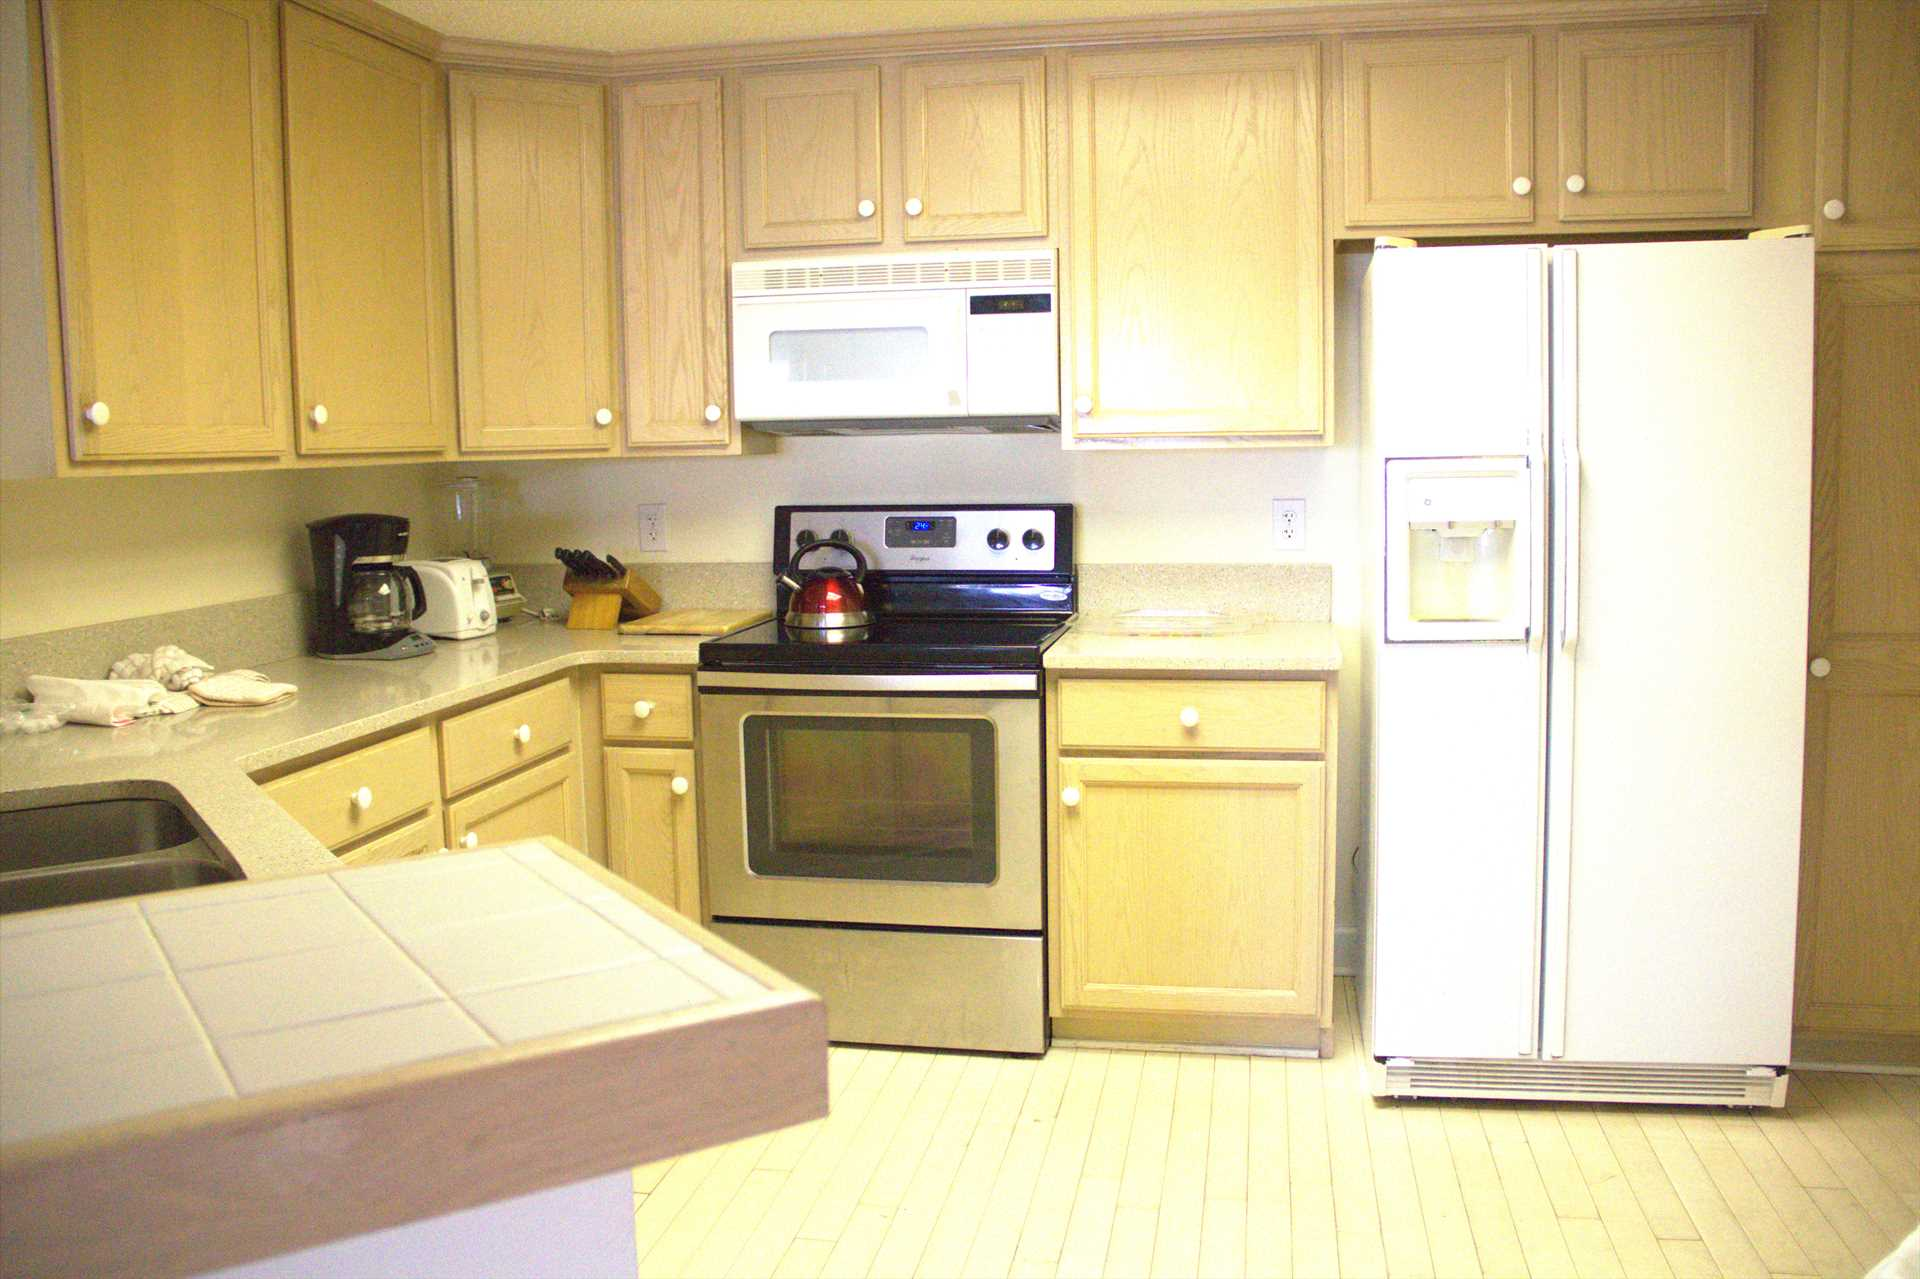 In this large kitchen there will be enough room for 2 cooks